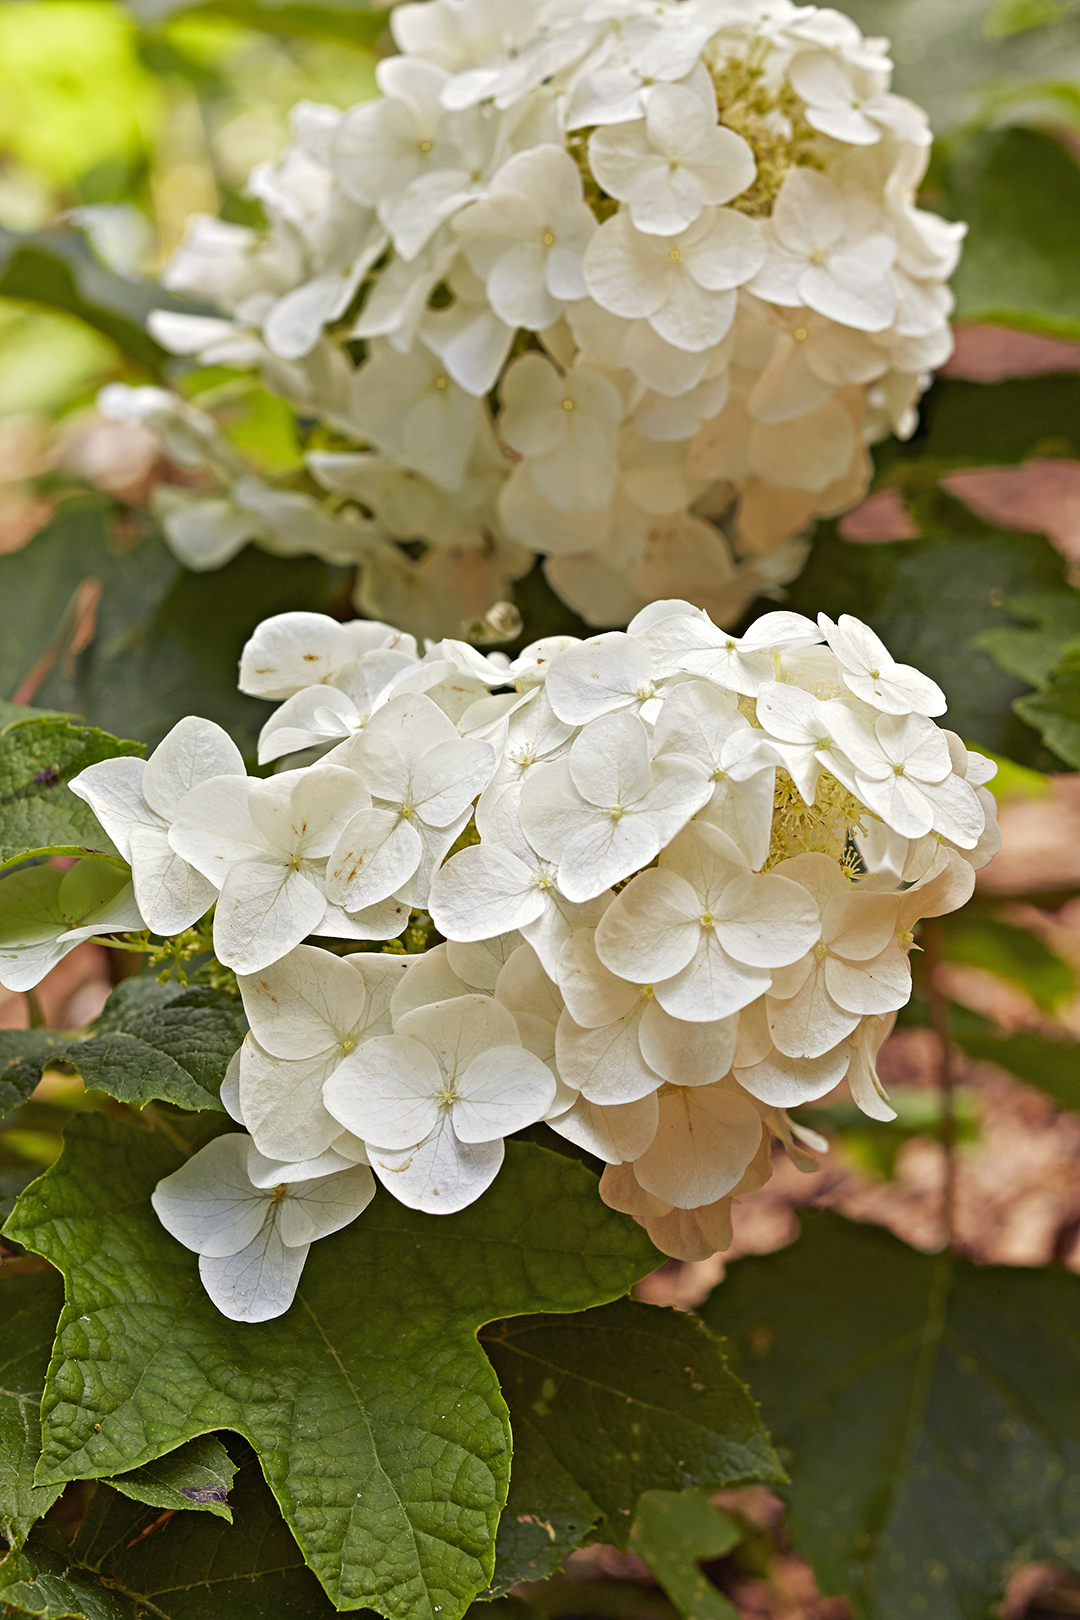 flower petals in white bunches